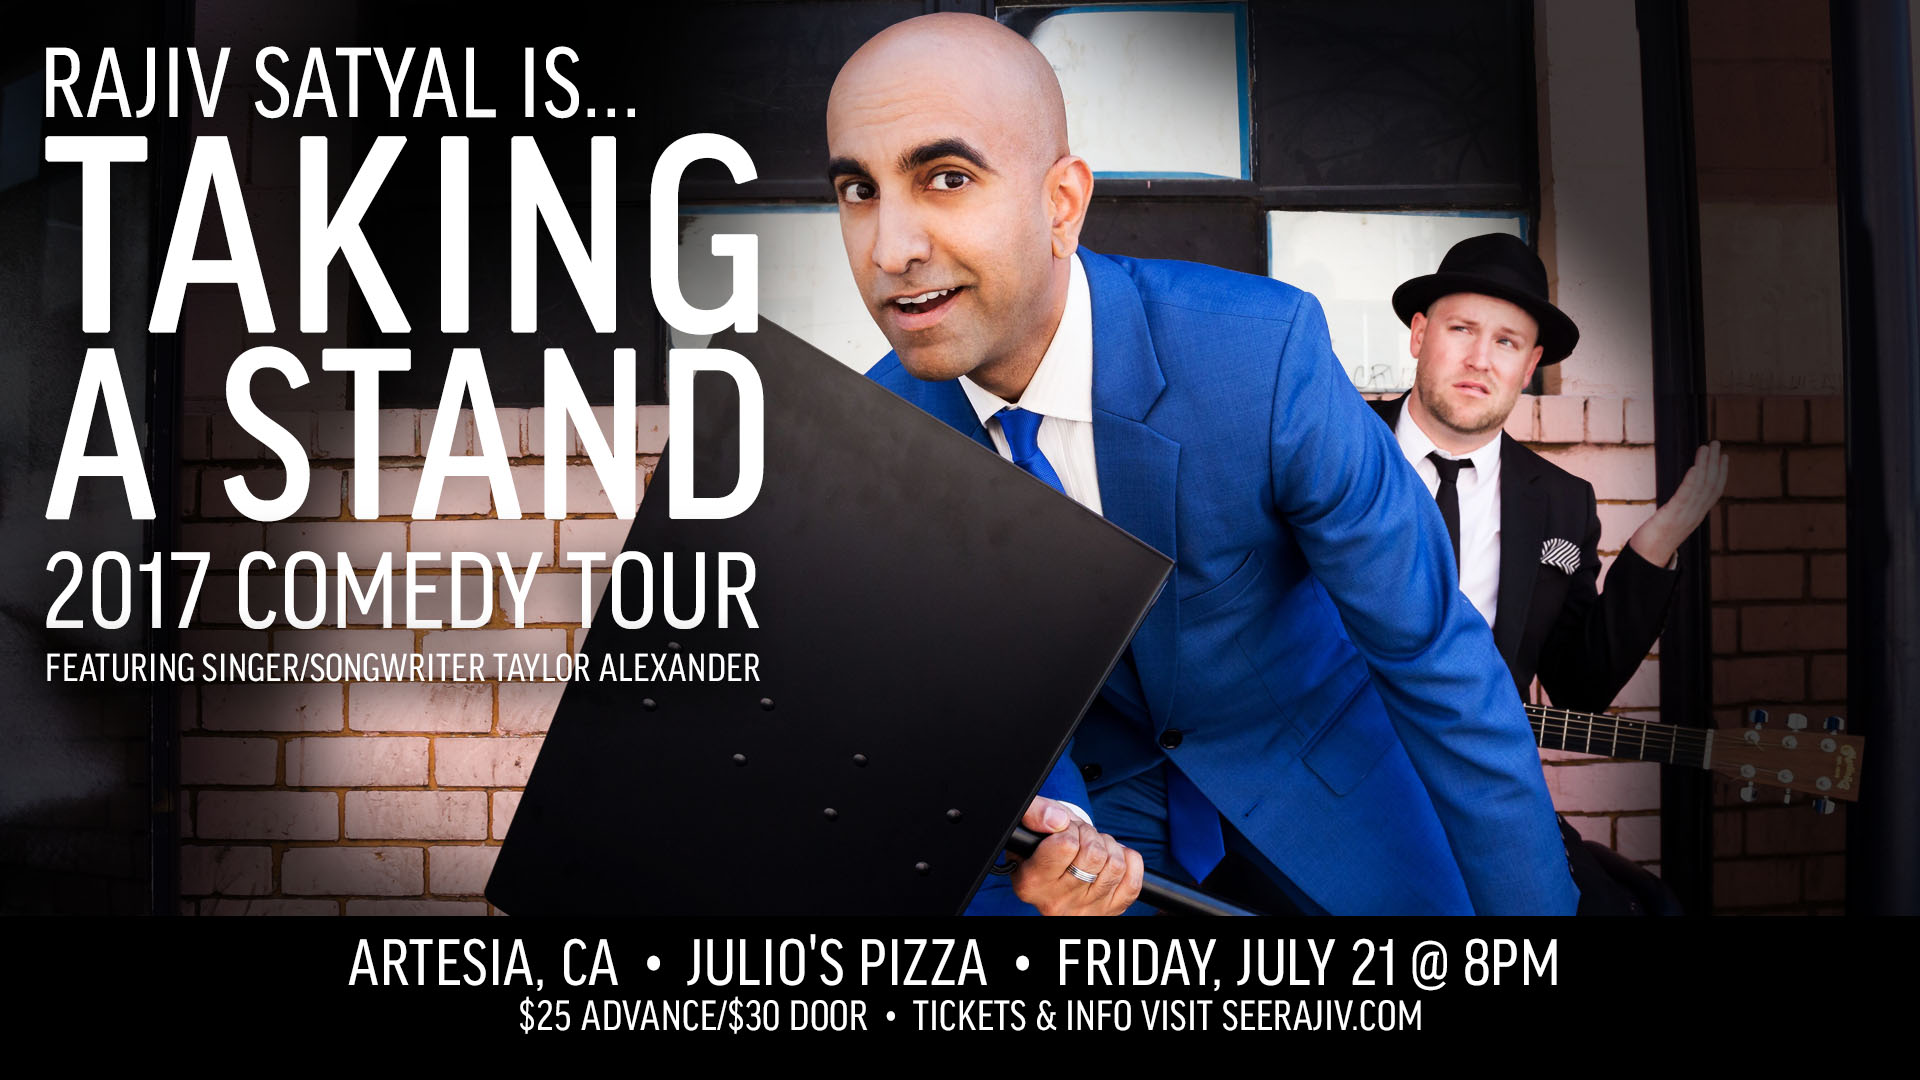 Rajiv Satyal's Taking a Stand Comedy Tour - Artesia